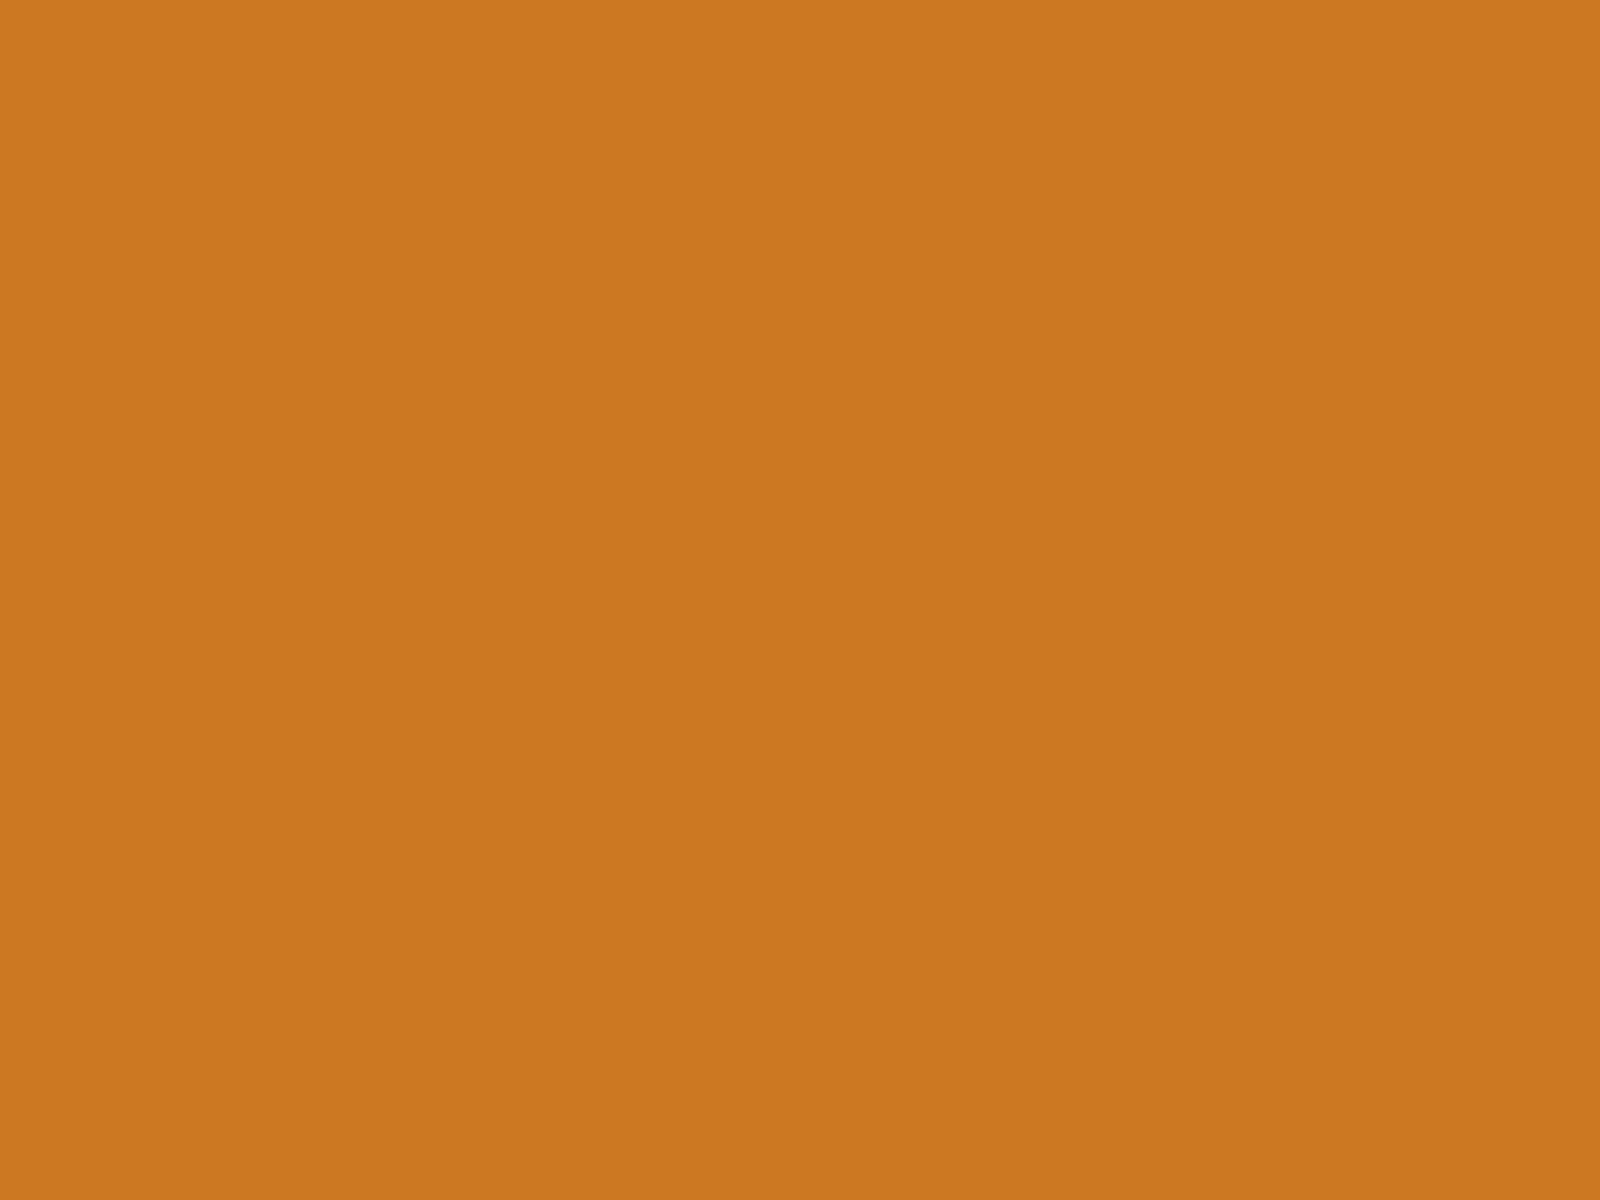 1600x1200 Ochre Solid Color Background